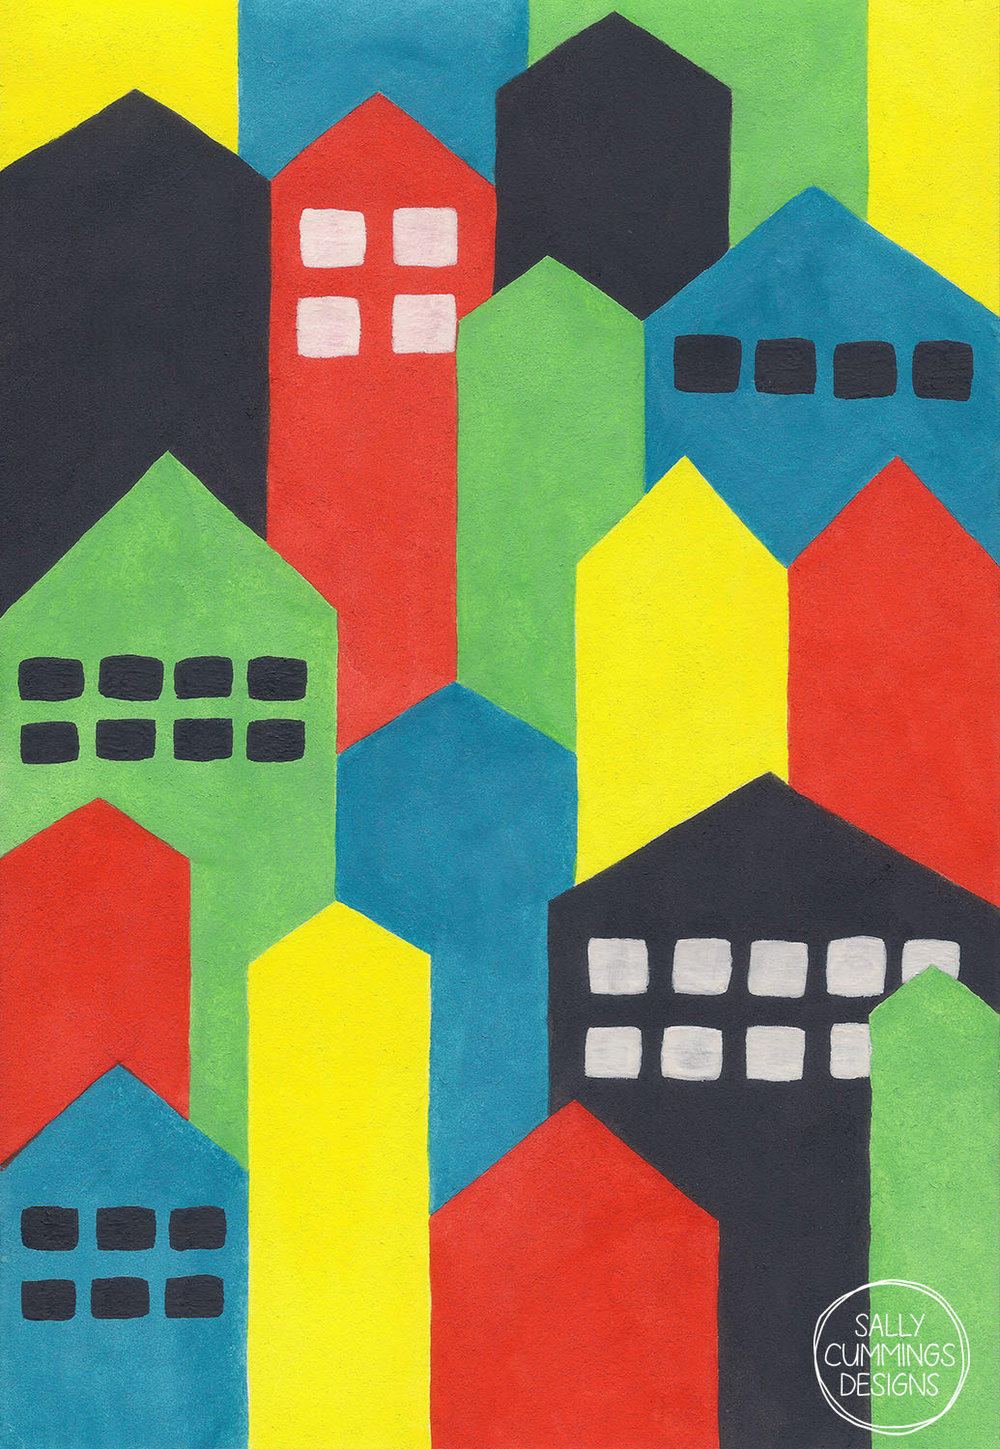 Sally Cummings Designs - Colourful Painted Cityscape